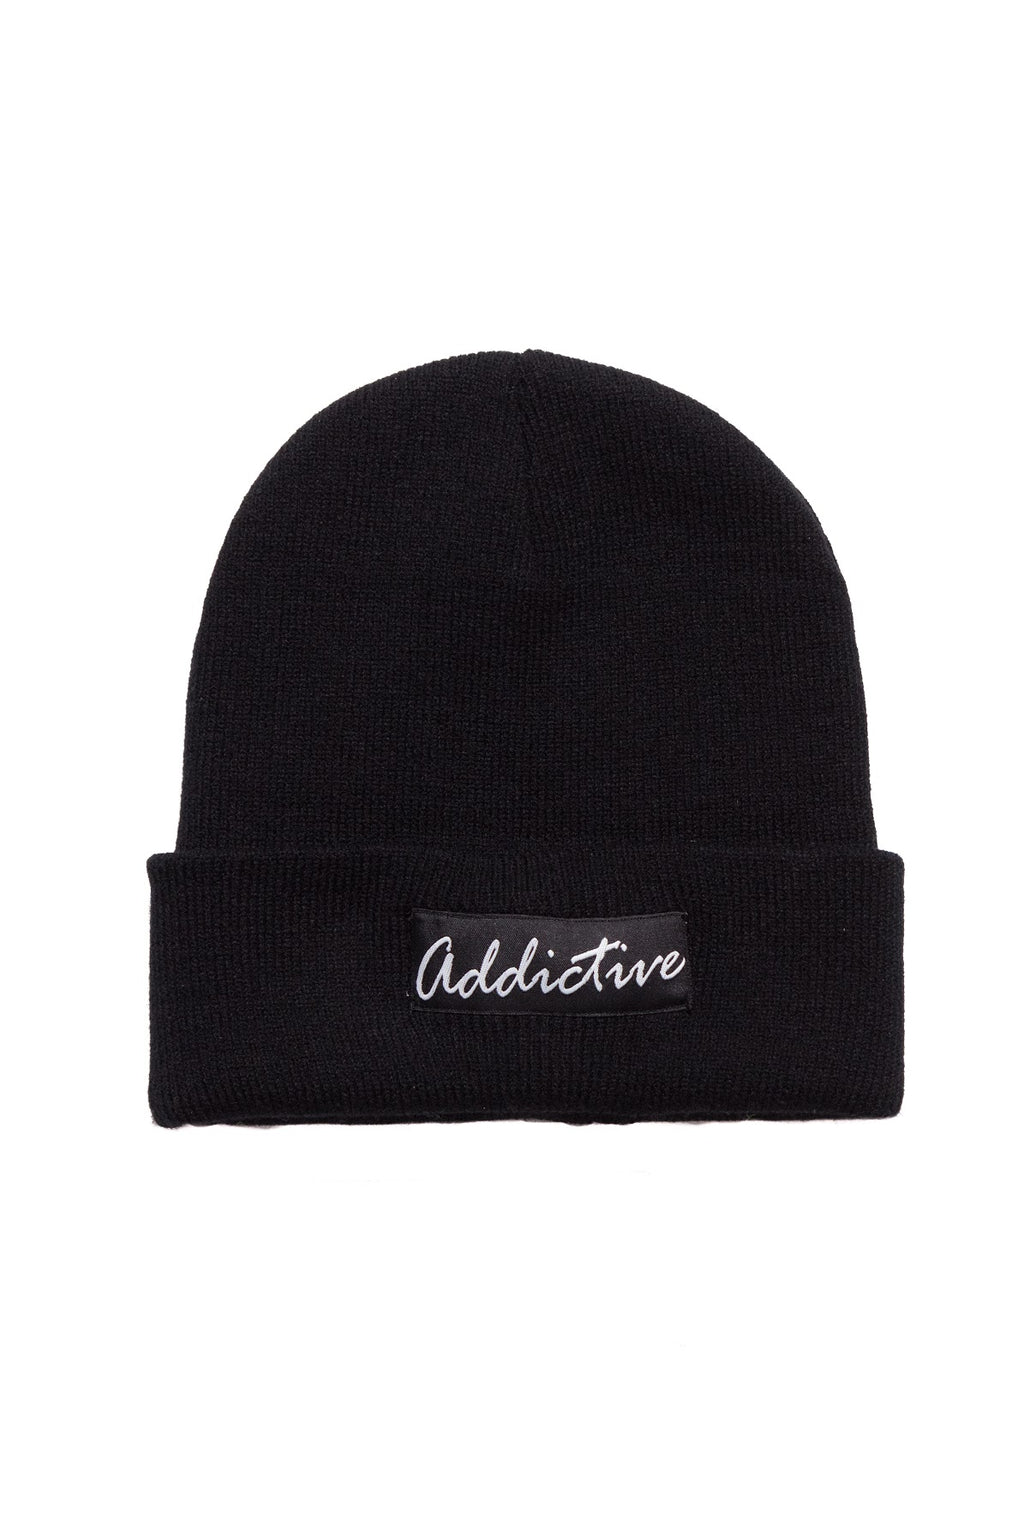 "Addictive ""Black"" Beanie"